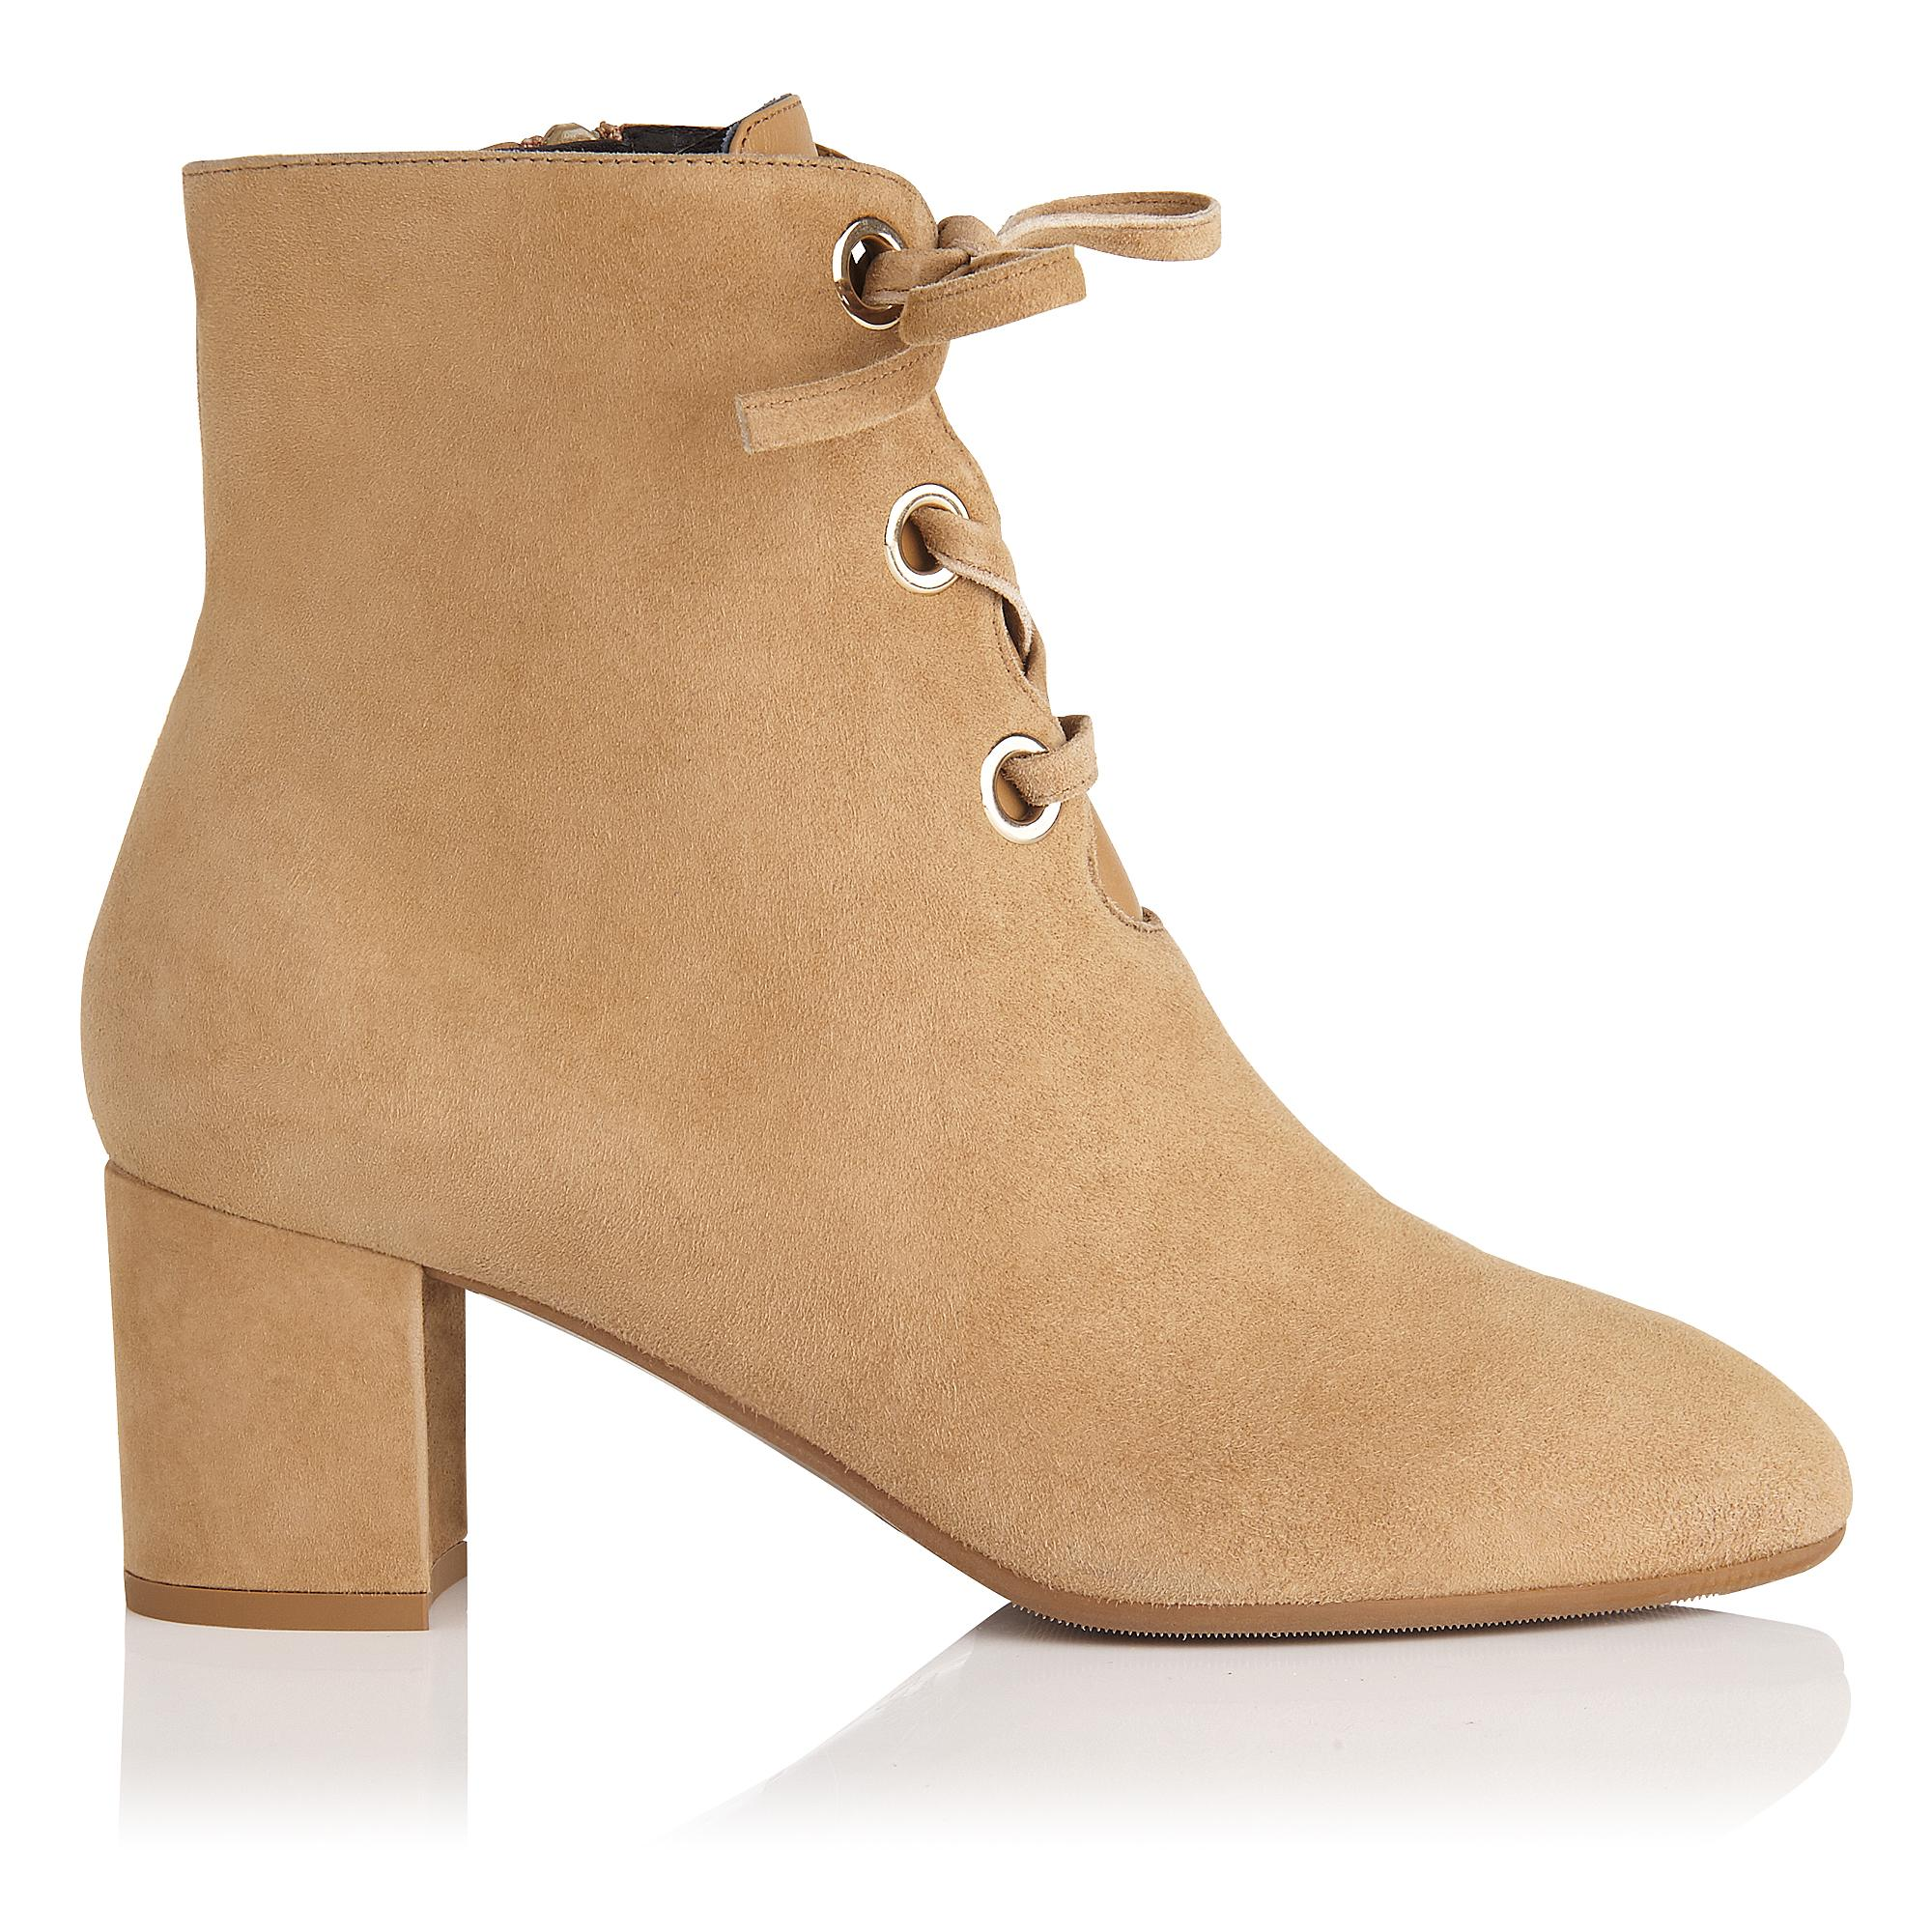 Mollie Camel Suede Lace Up Ankle Boot